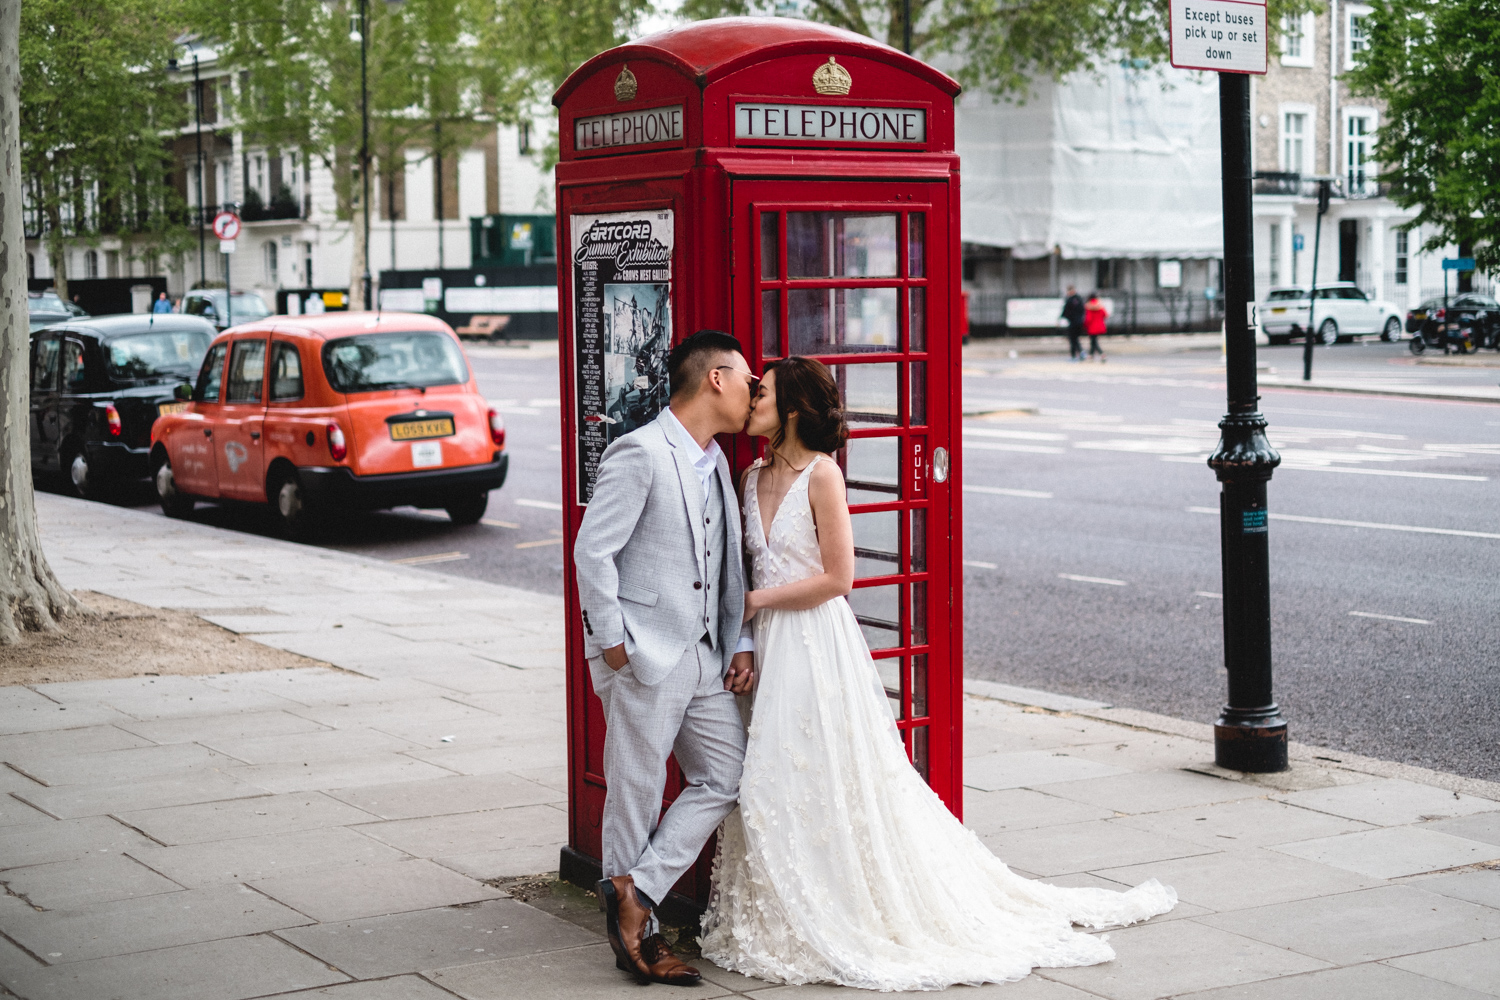 Copy of London pre-wedding photos - red telephone box